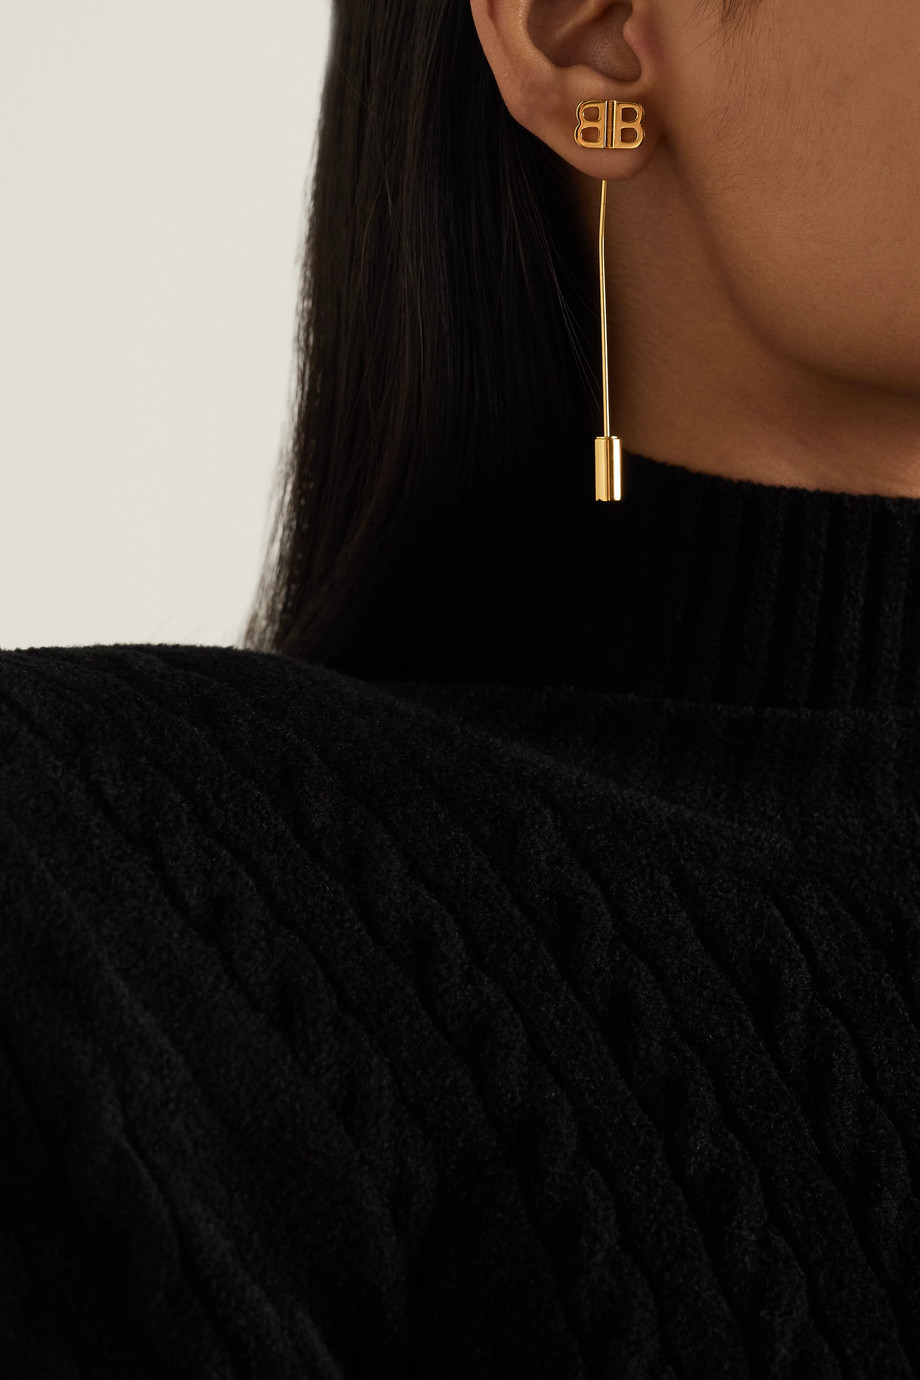 Balenciaga Pin BB gold-tone earrings